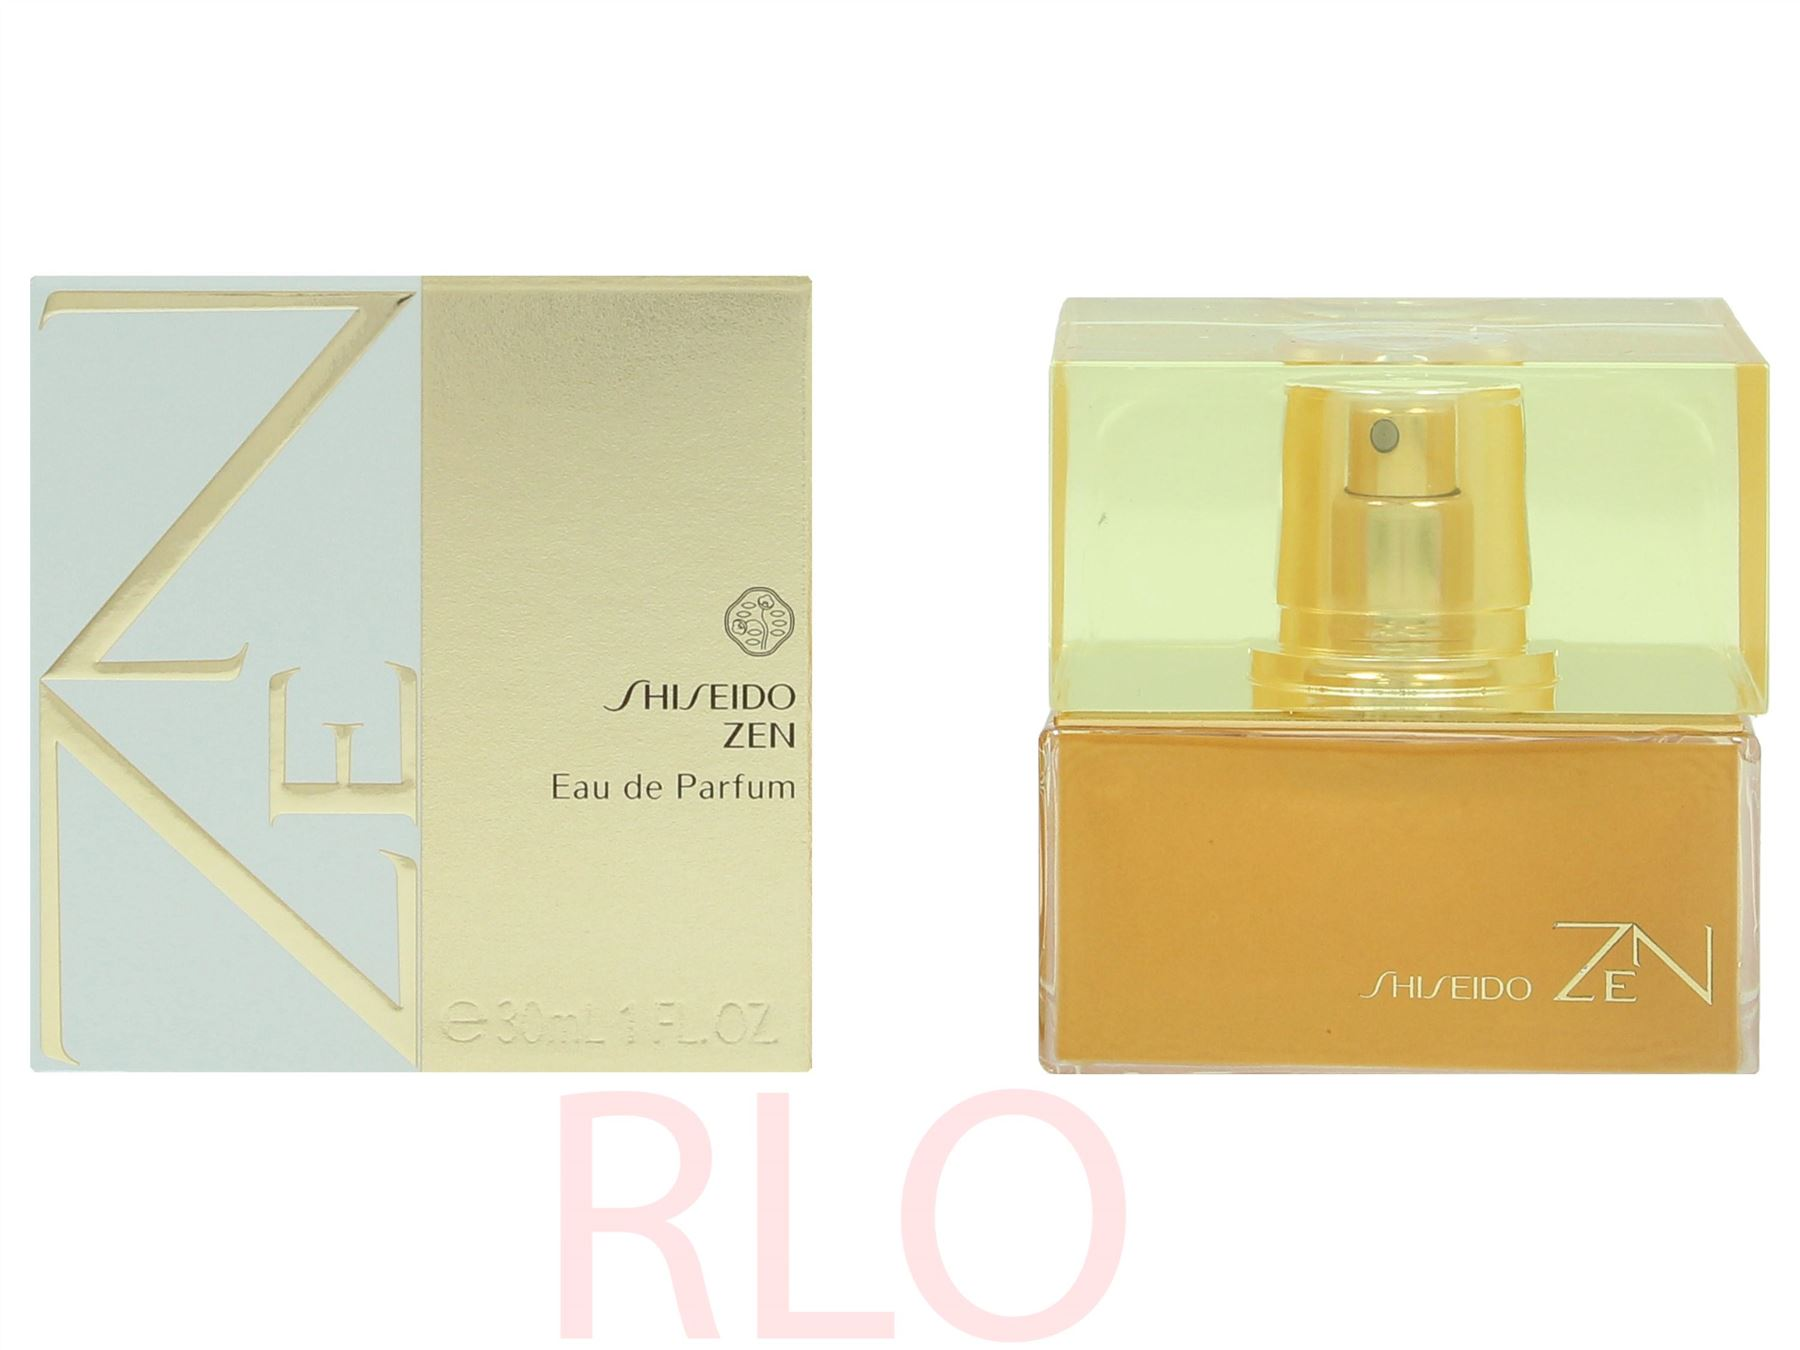 Details about Shiseido Zen For Women 30ml Eau De Parfum Women Spray